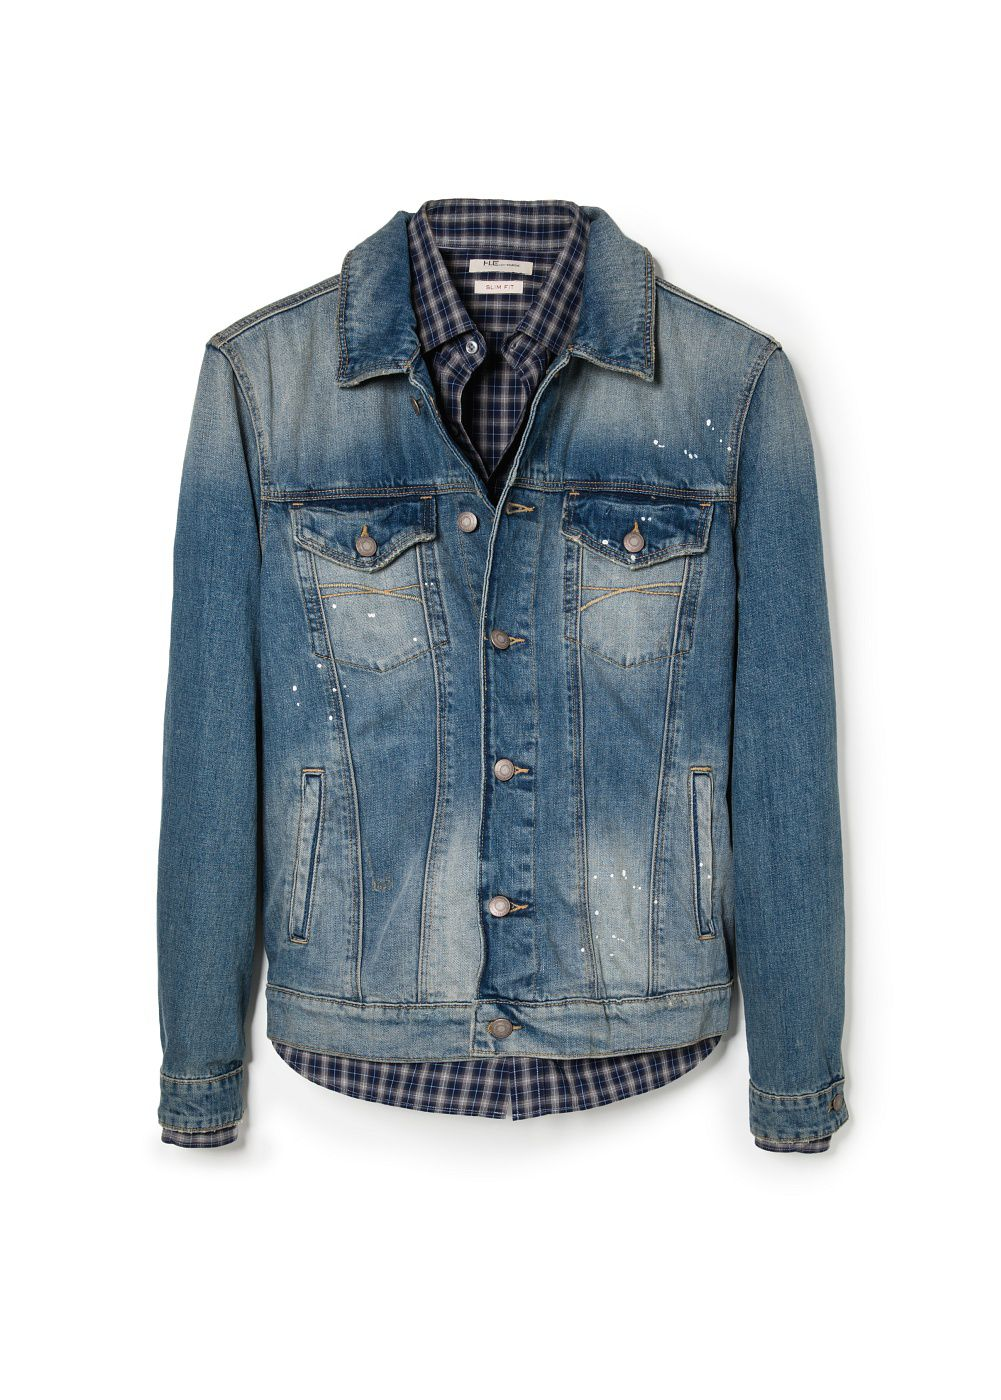 Vintage wash denim jacket